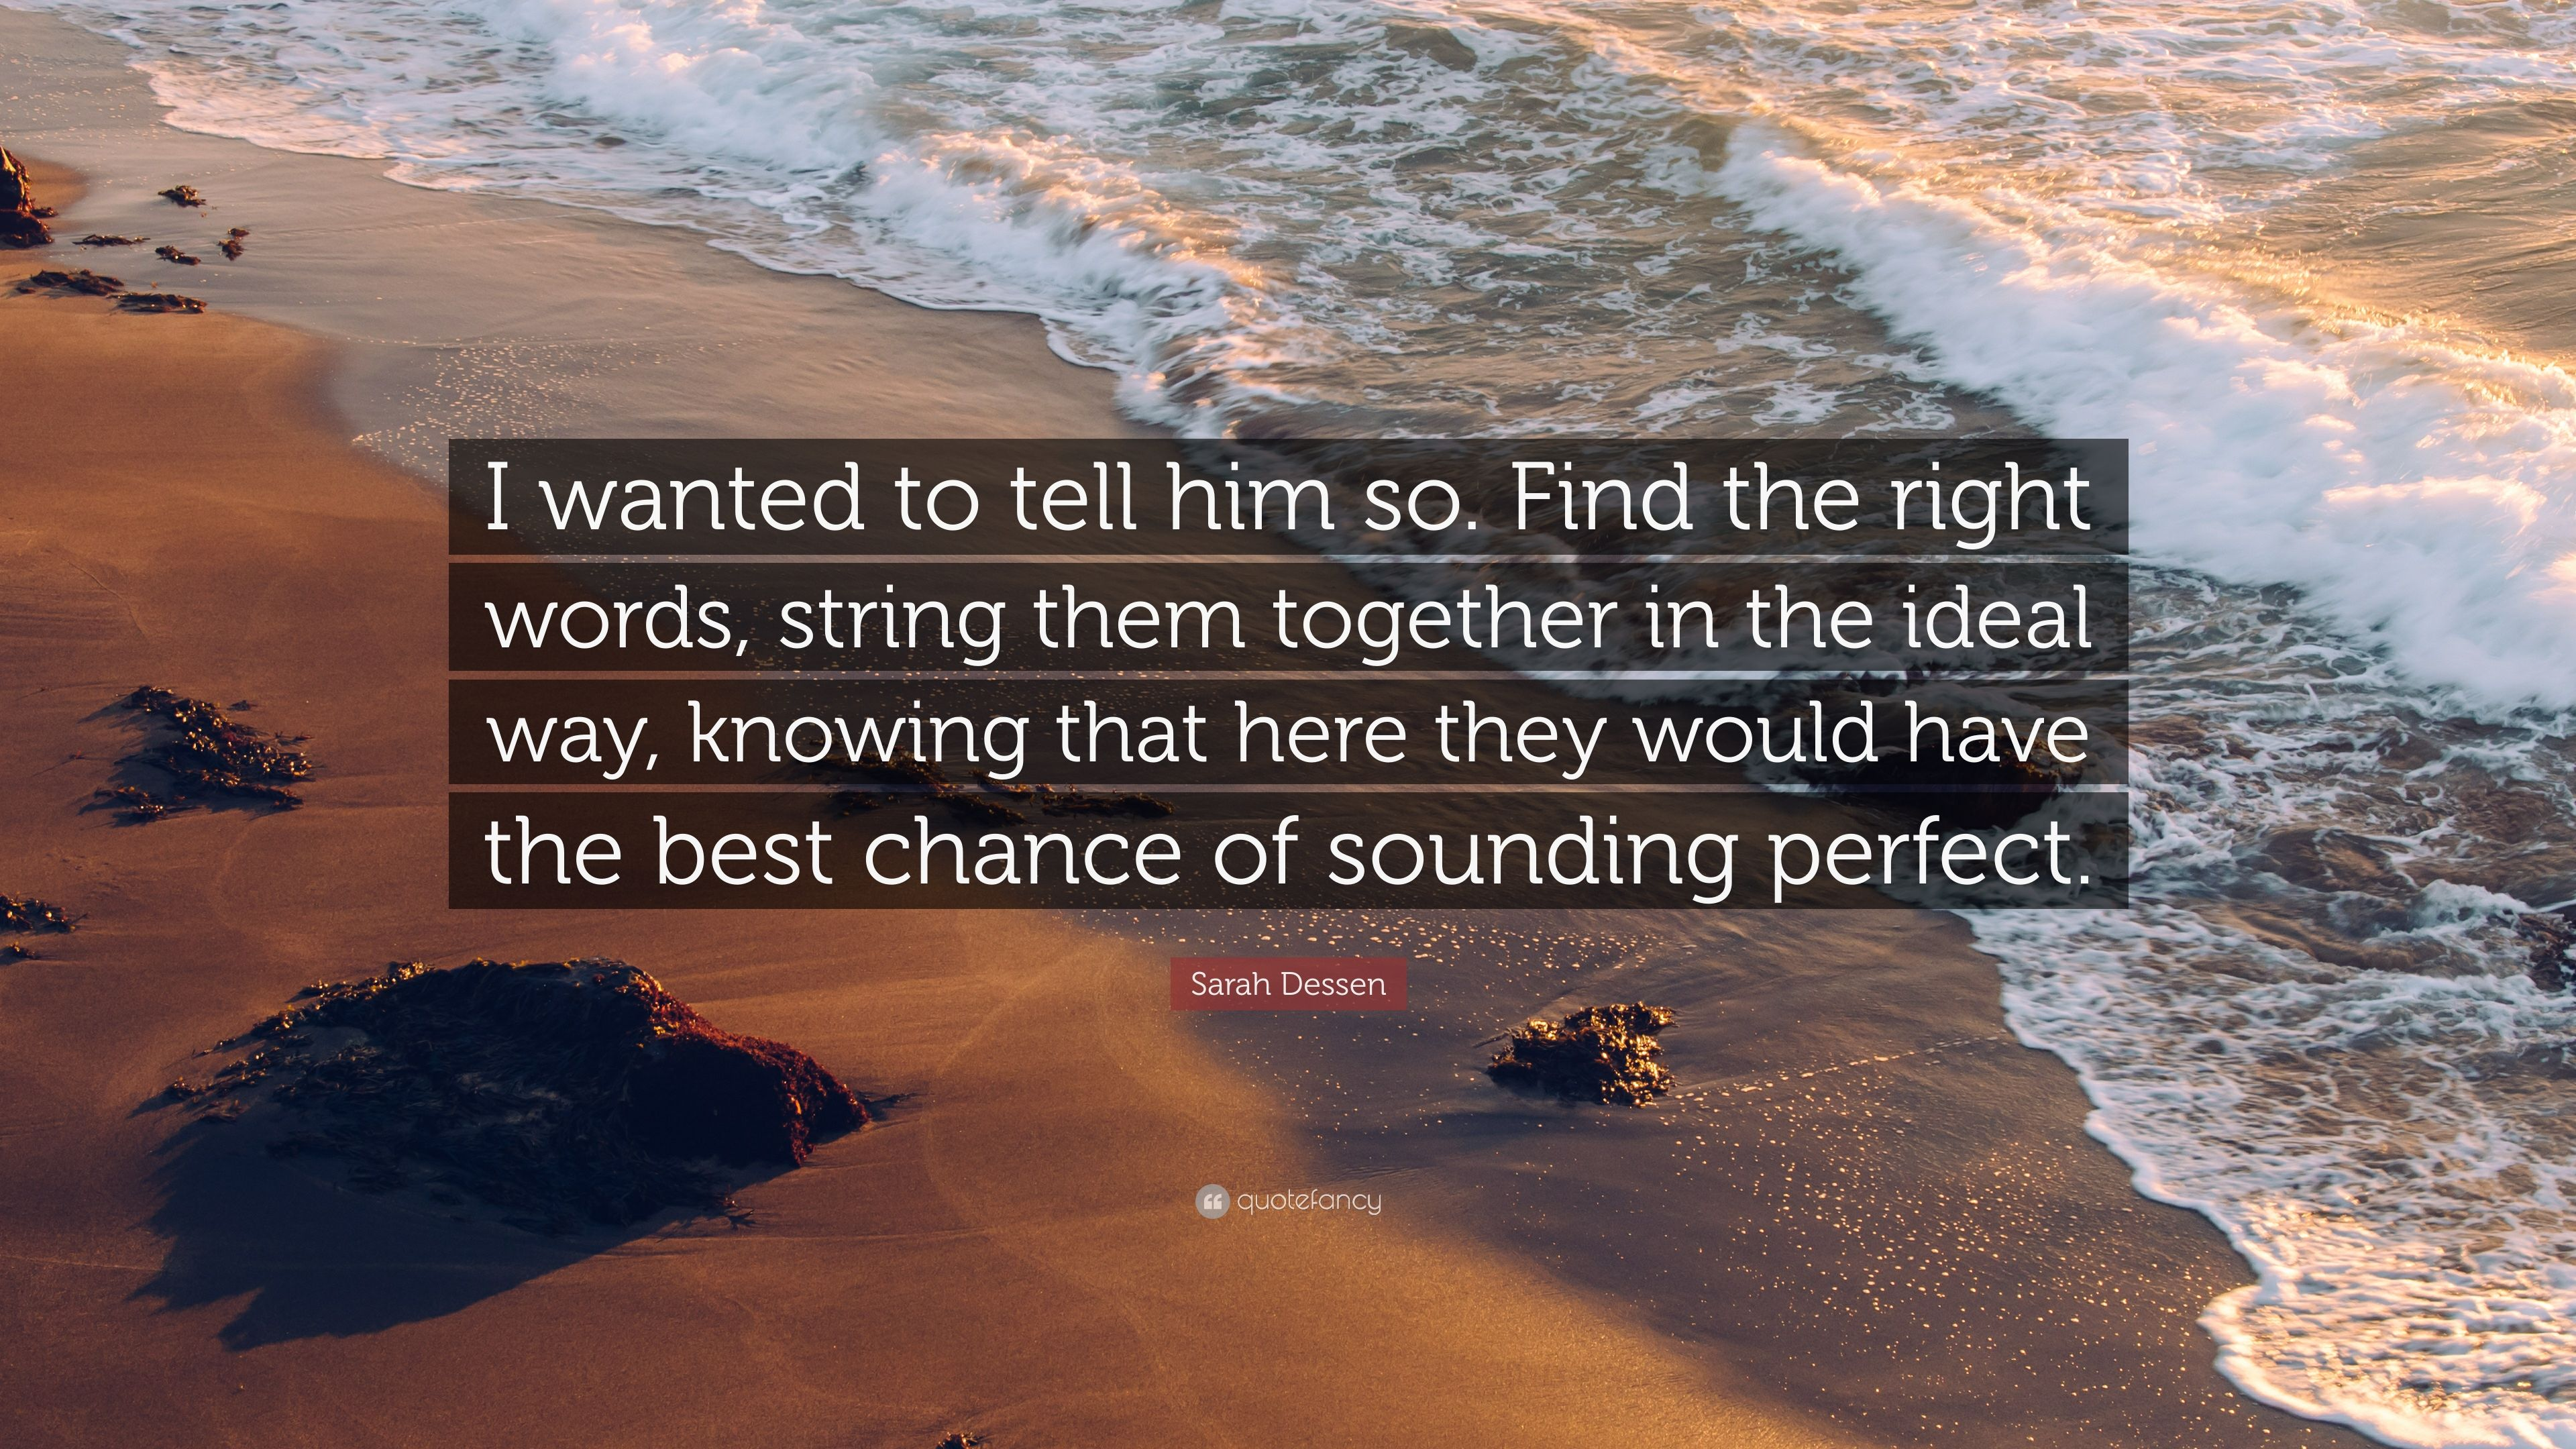 Intriguing Sarah Dessen Wanted To Tell Him Find Right Words Sarah Dessen Wanted To Tell Him Find Right Words I Have Words Youtube I Have Words Speech inspiration I Have The Best Words